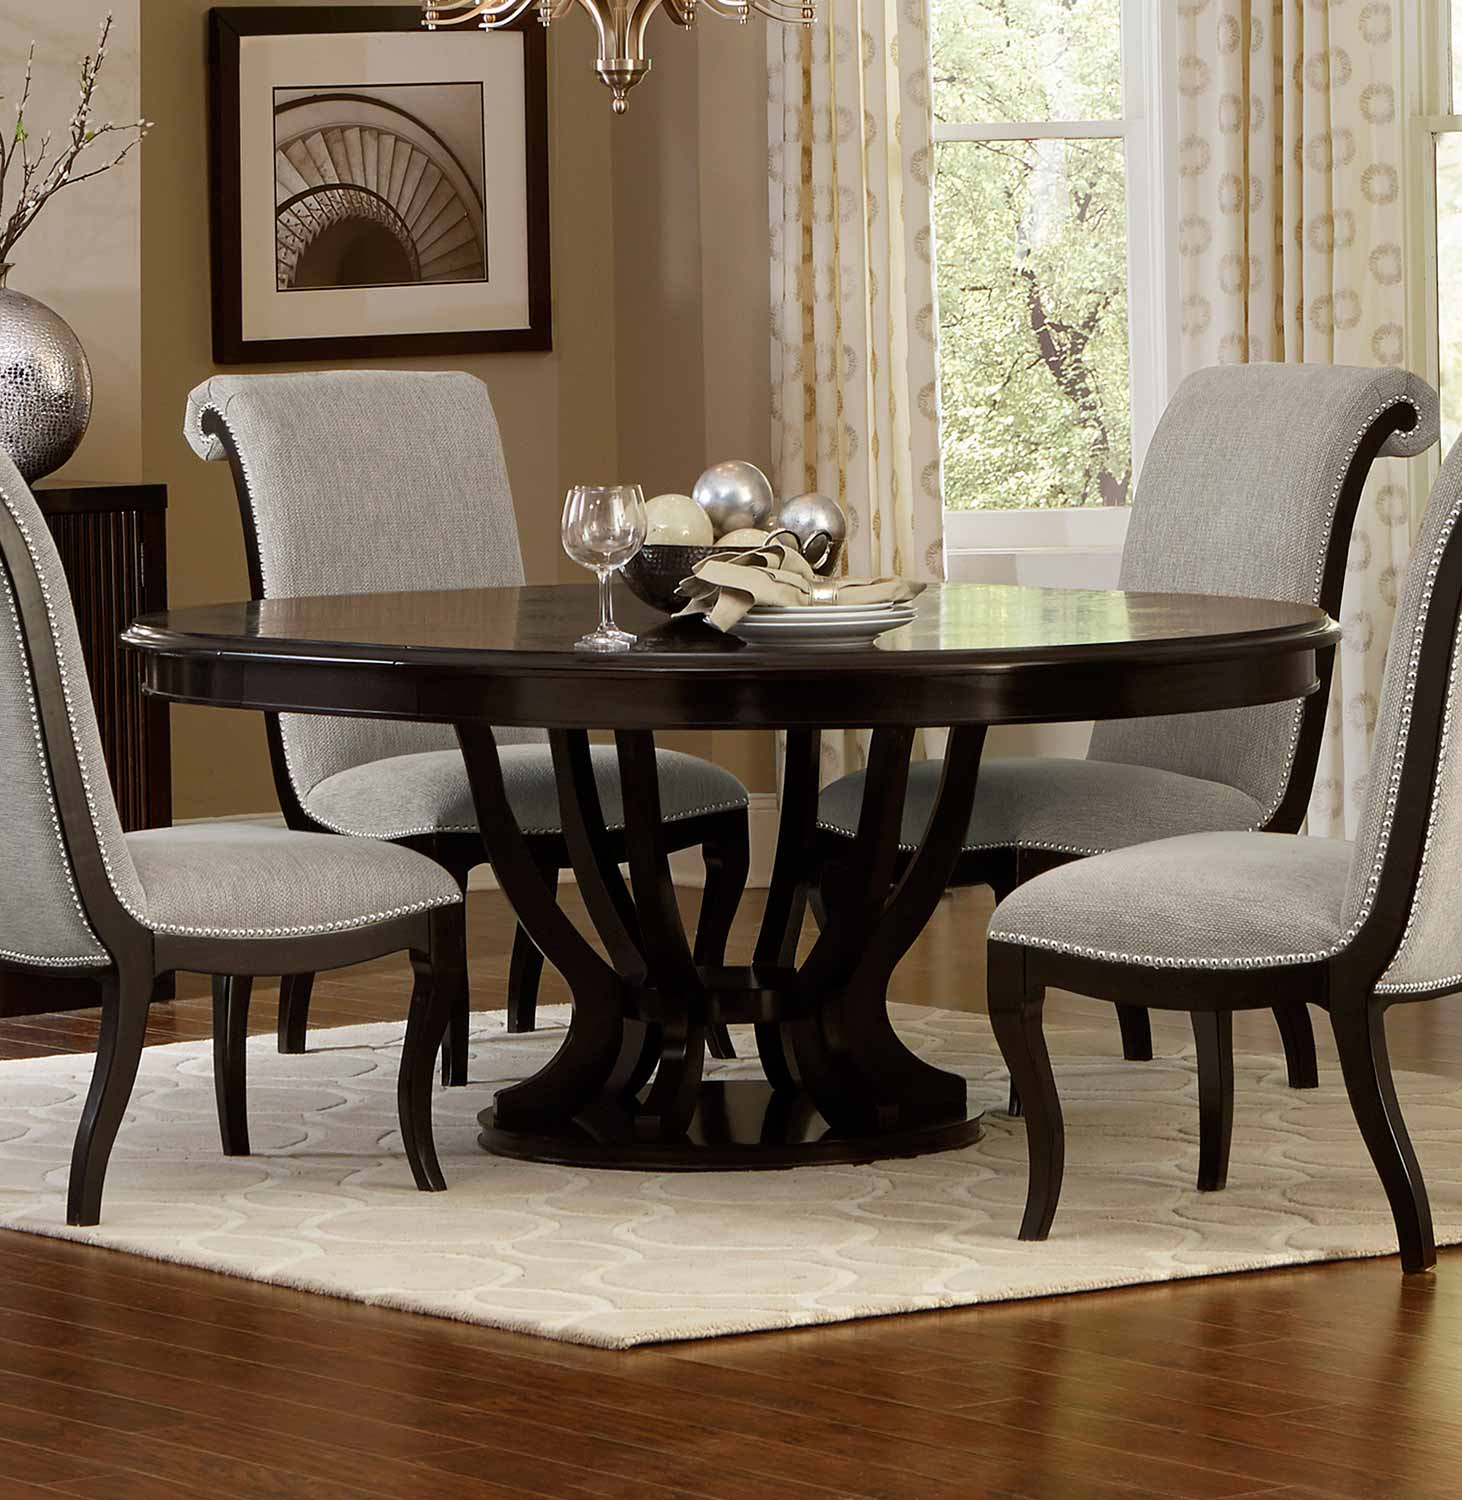 Homelegance Savion Round Oval Dining Table With Leaf Espresso 5494